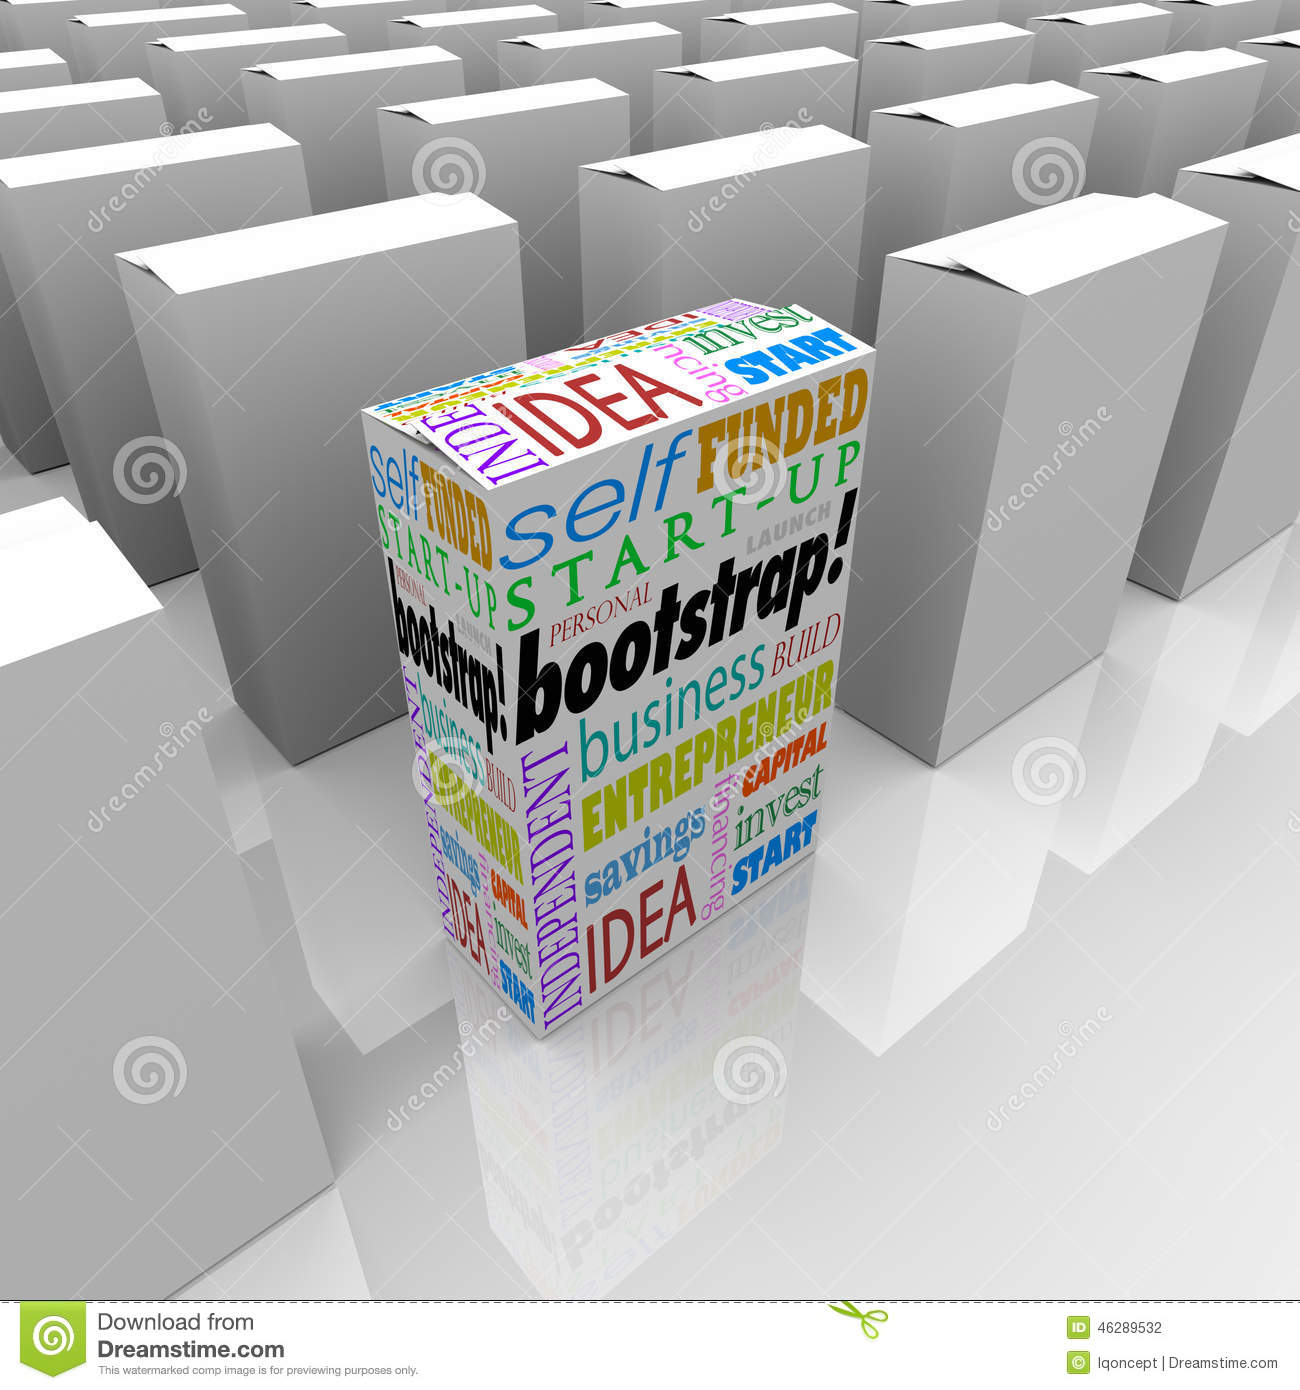 Bootstrap New Product Package Many Boxes Unique Self Funded Business